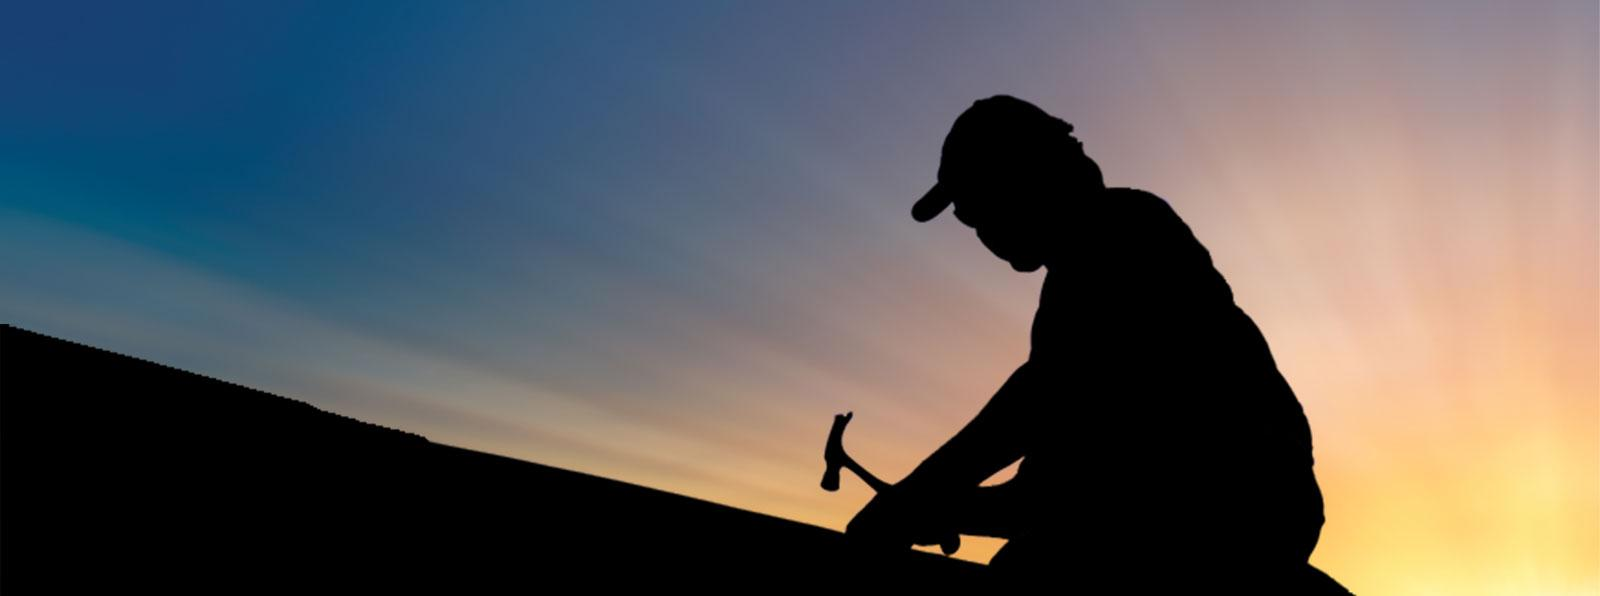 Roofing Company In Richmond Va Roof Repair And